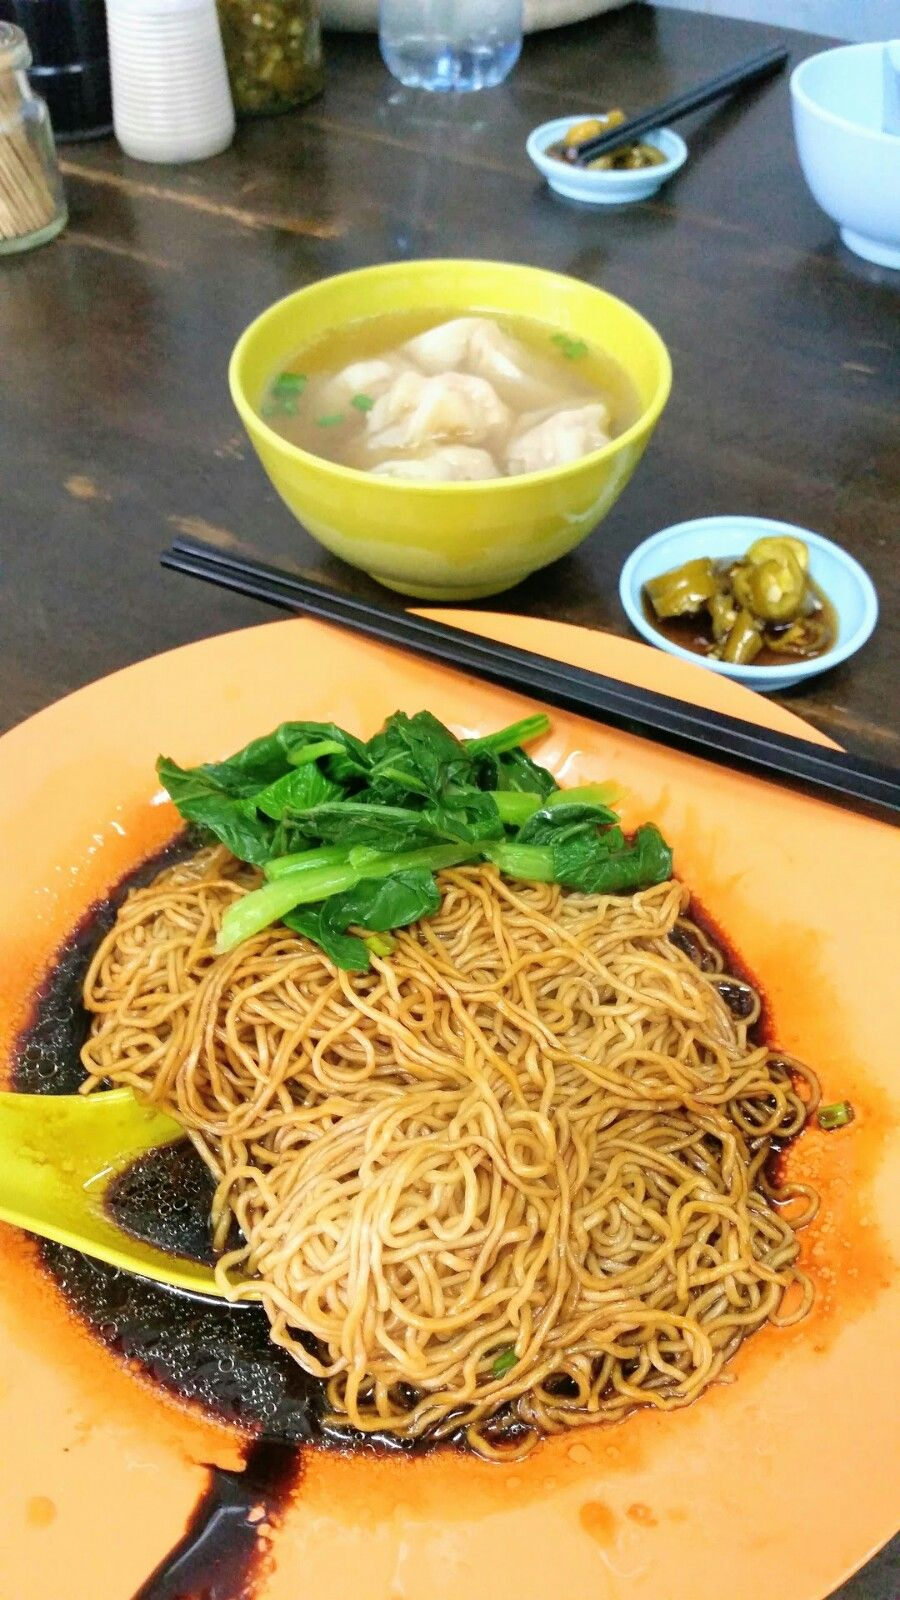 Malaysian style wanton noodles with wanton and char siew